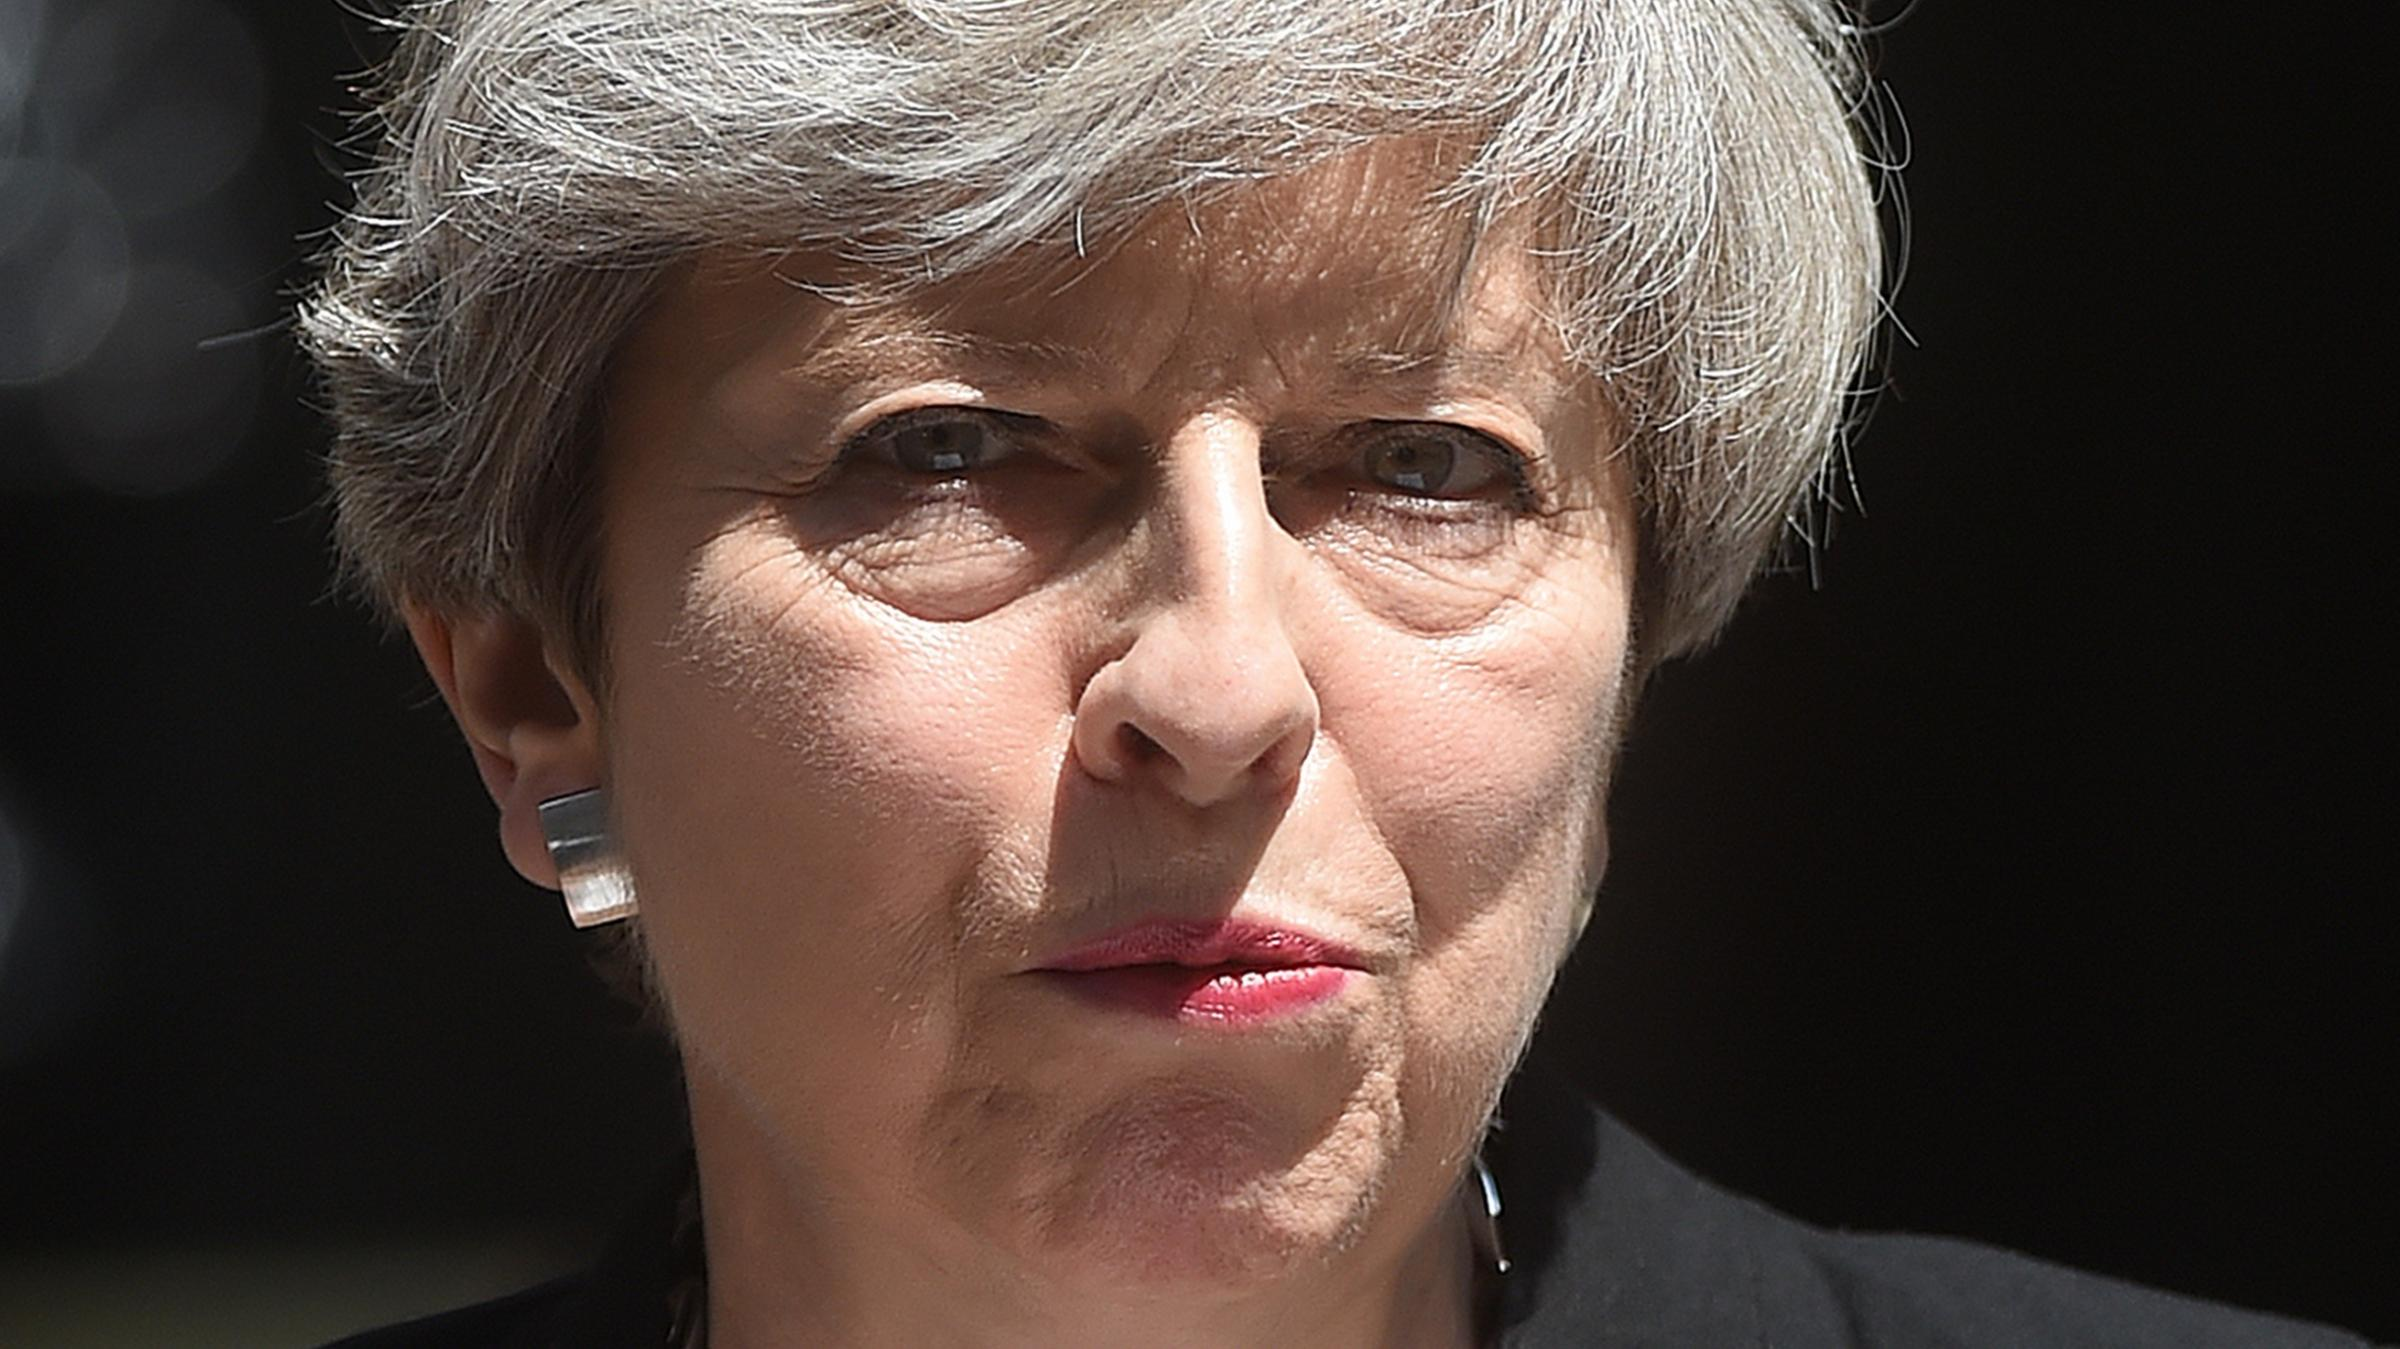 Theresa May 'getting on with job' despite fierce criticism